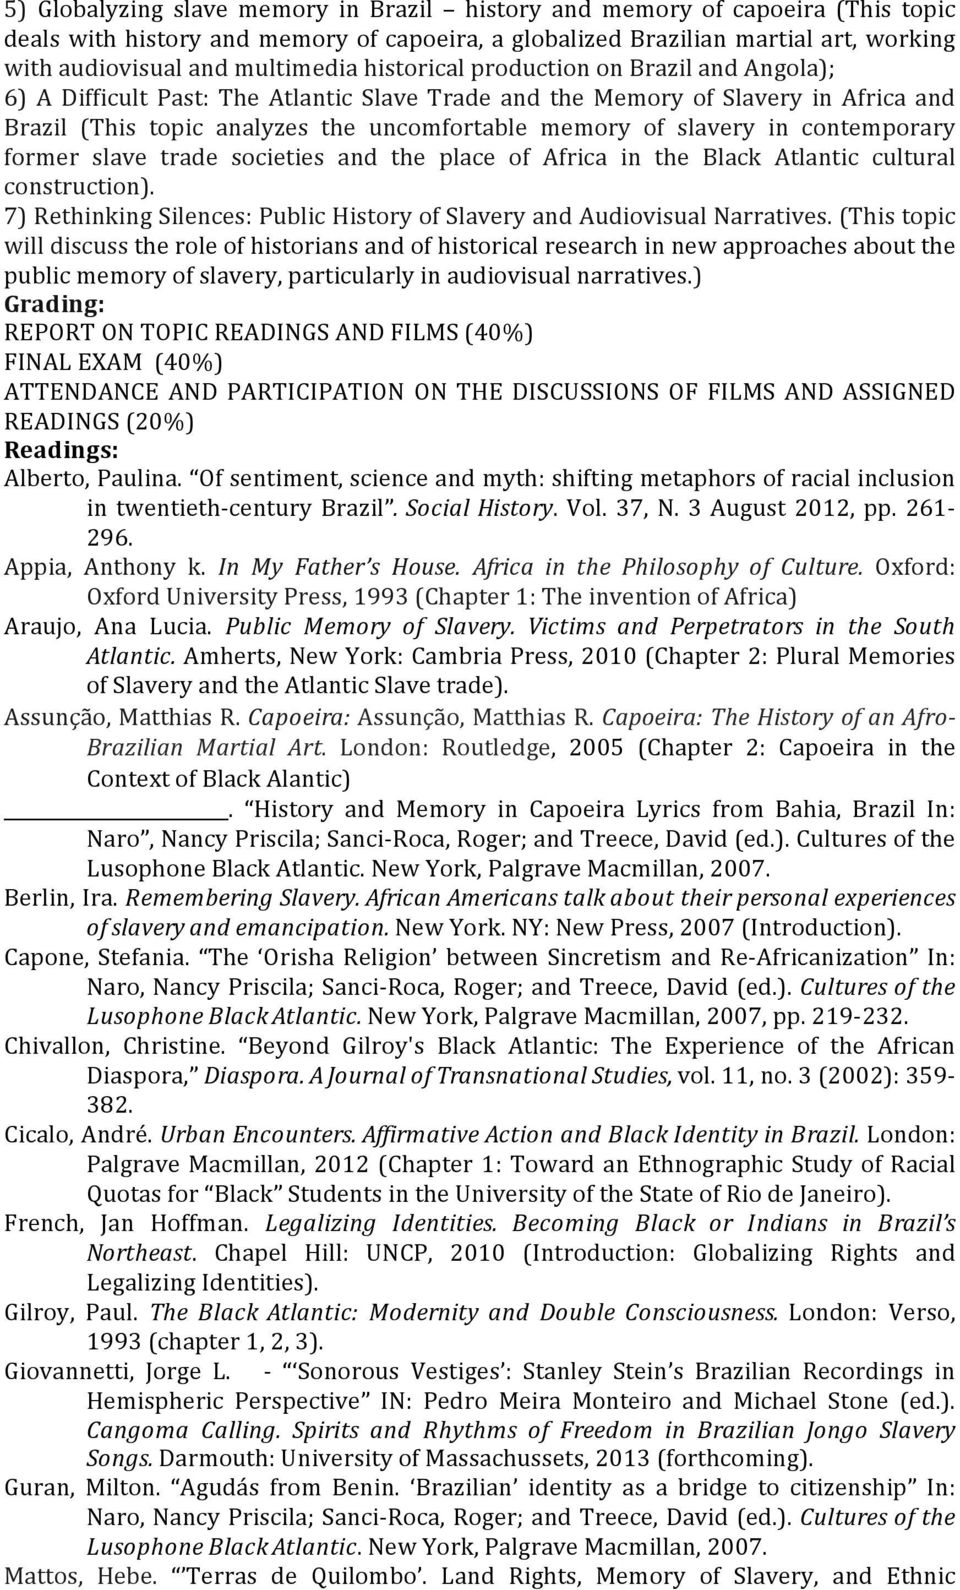 contemporary former slave trade societies and the place of Africa in the Black Atlantic cultural construction). 7) Rethinking Silences: Public History of Slavery and Audiovisual Narratives.